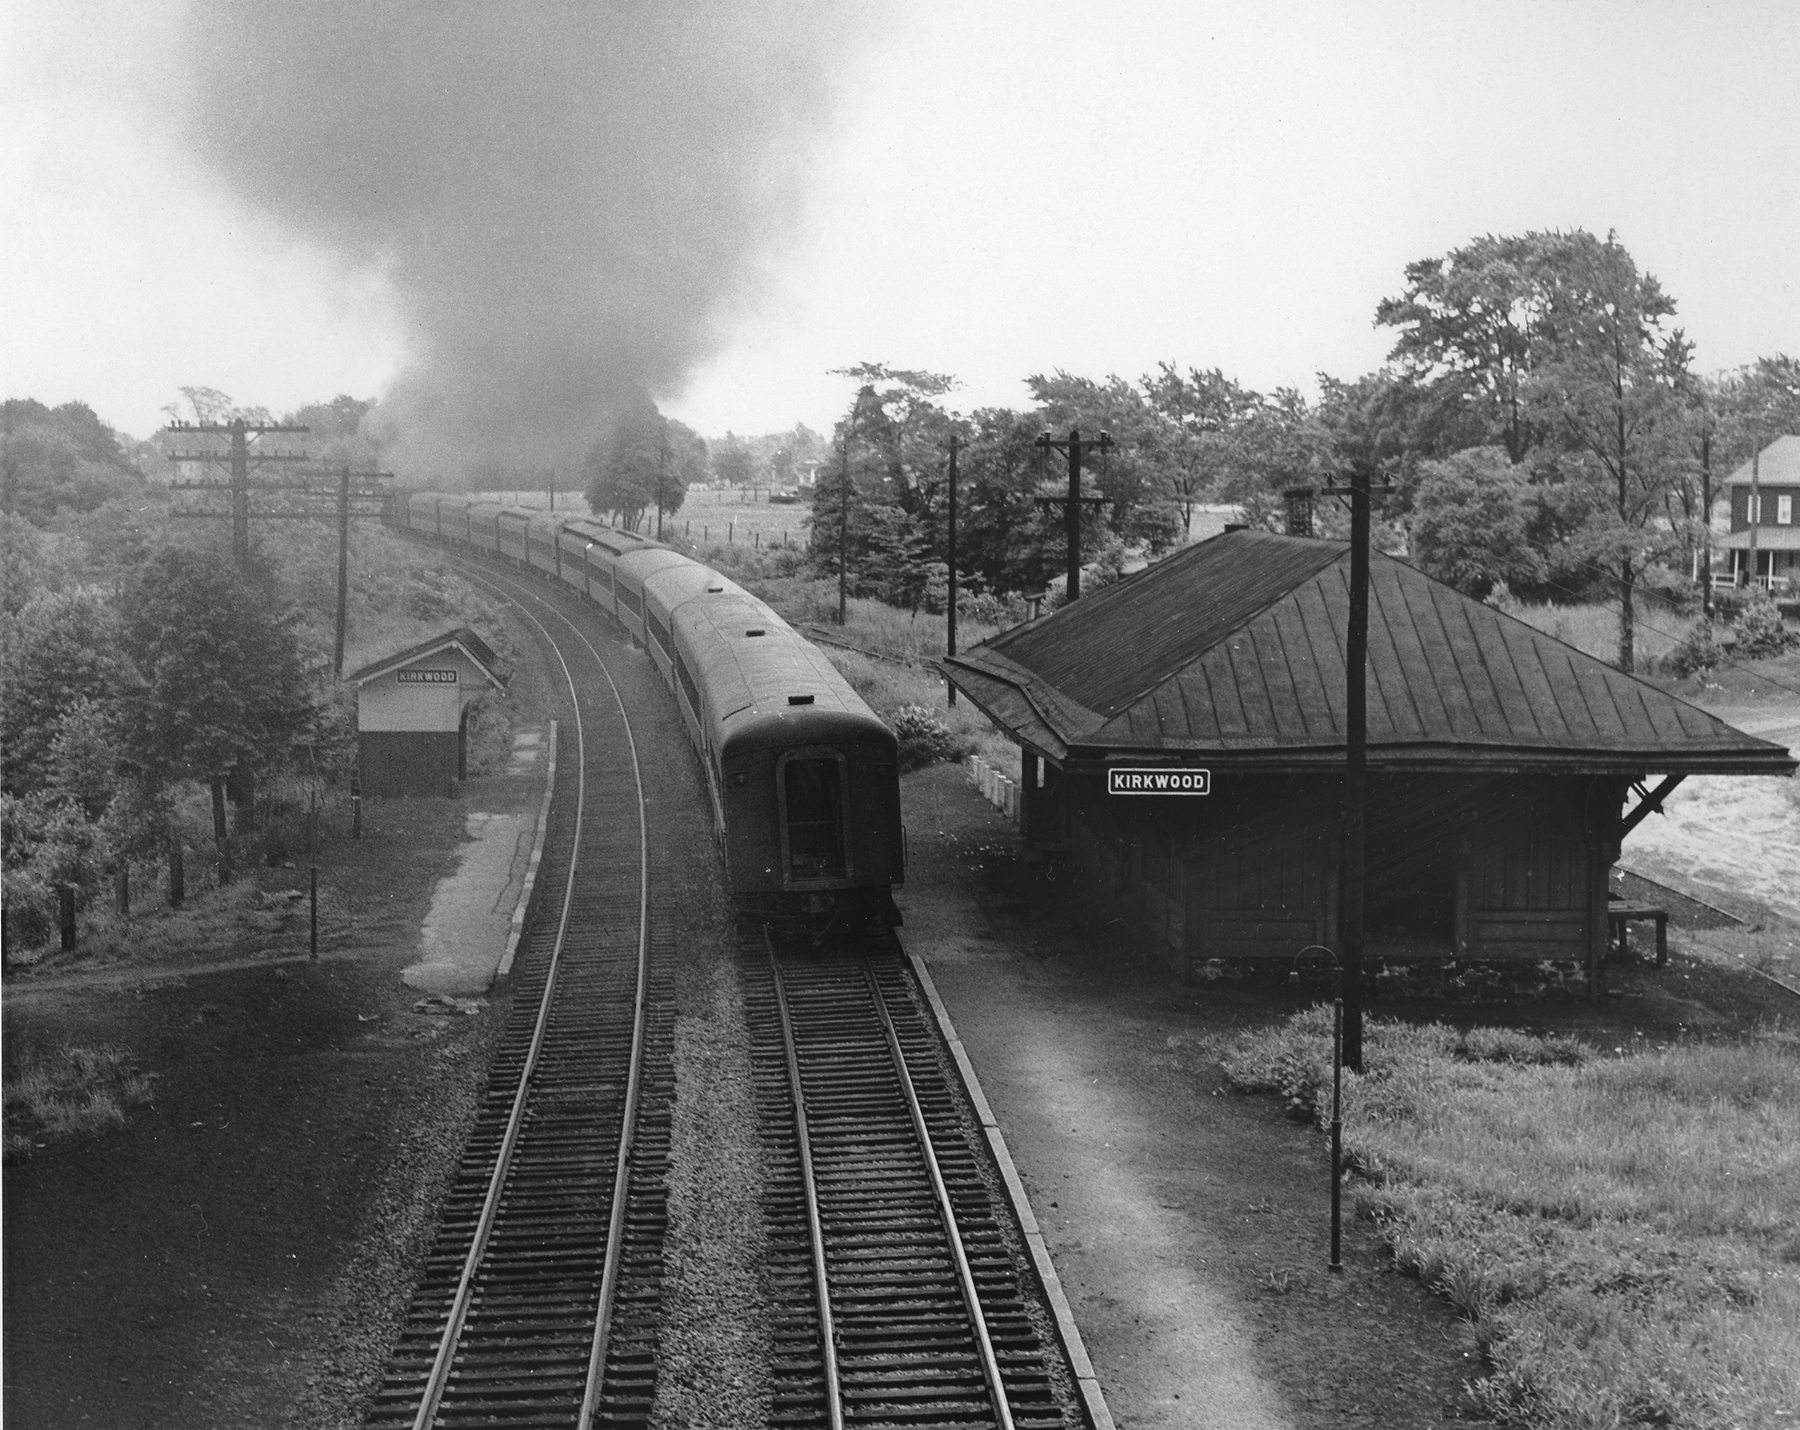 Southbound PRSL train passes through Kirkwood, New Jersey with PRR K-4 class locomotive 8746 and eleven cars, circa Summer of 1950. The Kirkwood station is actually where the modern day Lindenwold Station is for both New Jersey Transit and the PATCO high speed line.Photography by Robert L. Long, Collection of William Gindhart